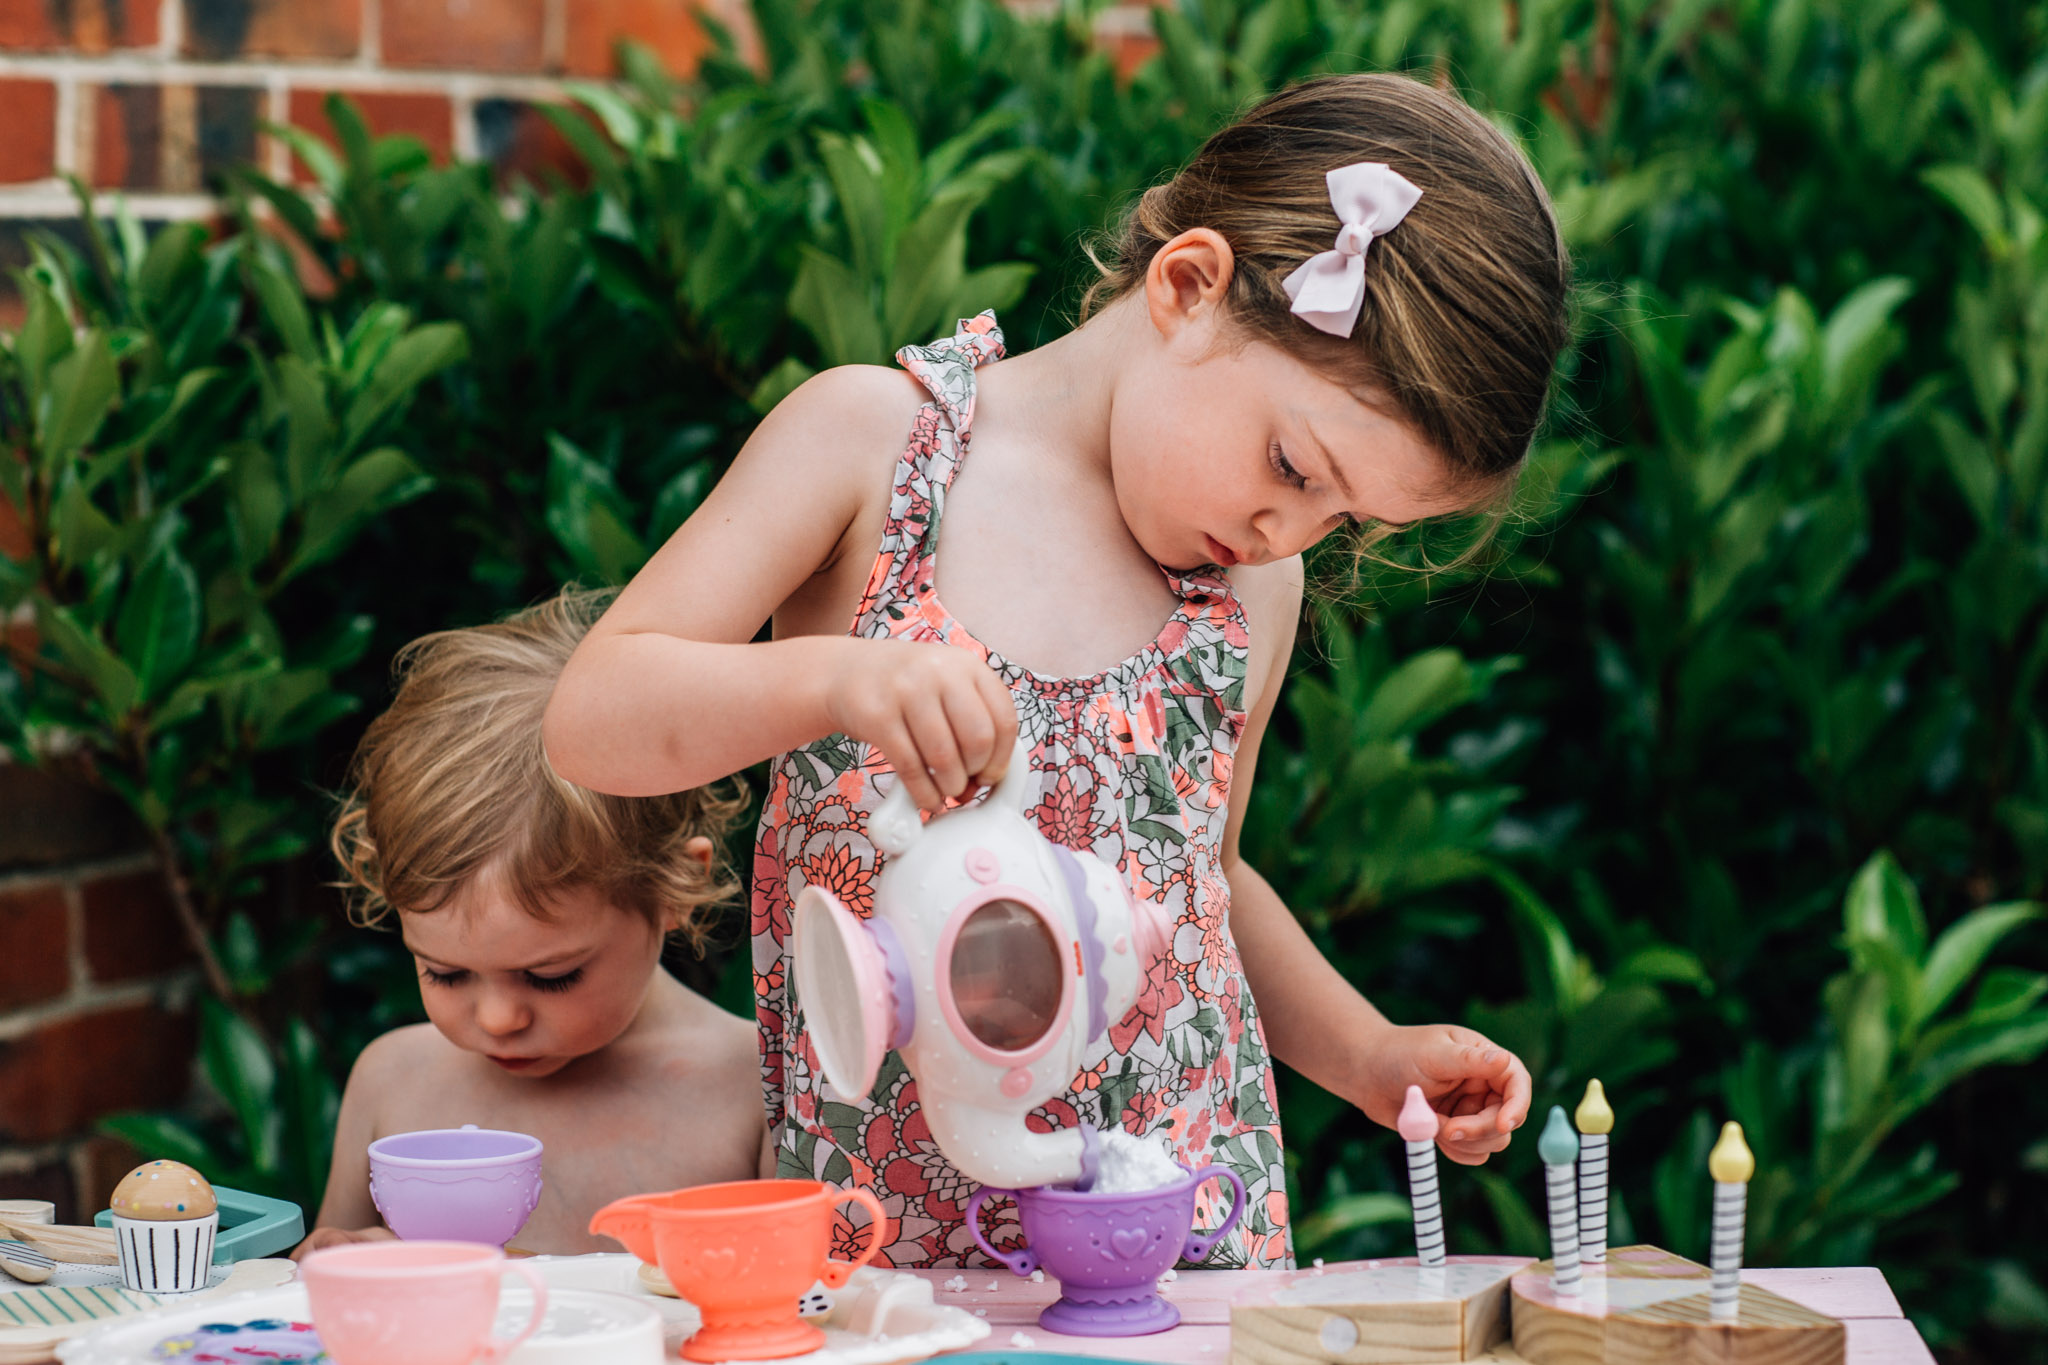 little-girl-at-tea-party-pouring-tea-from-teapot (1 of 1).jpg